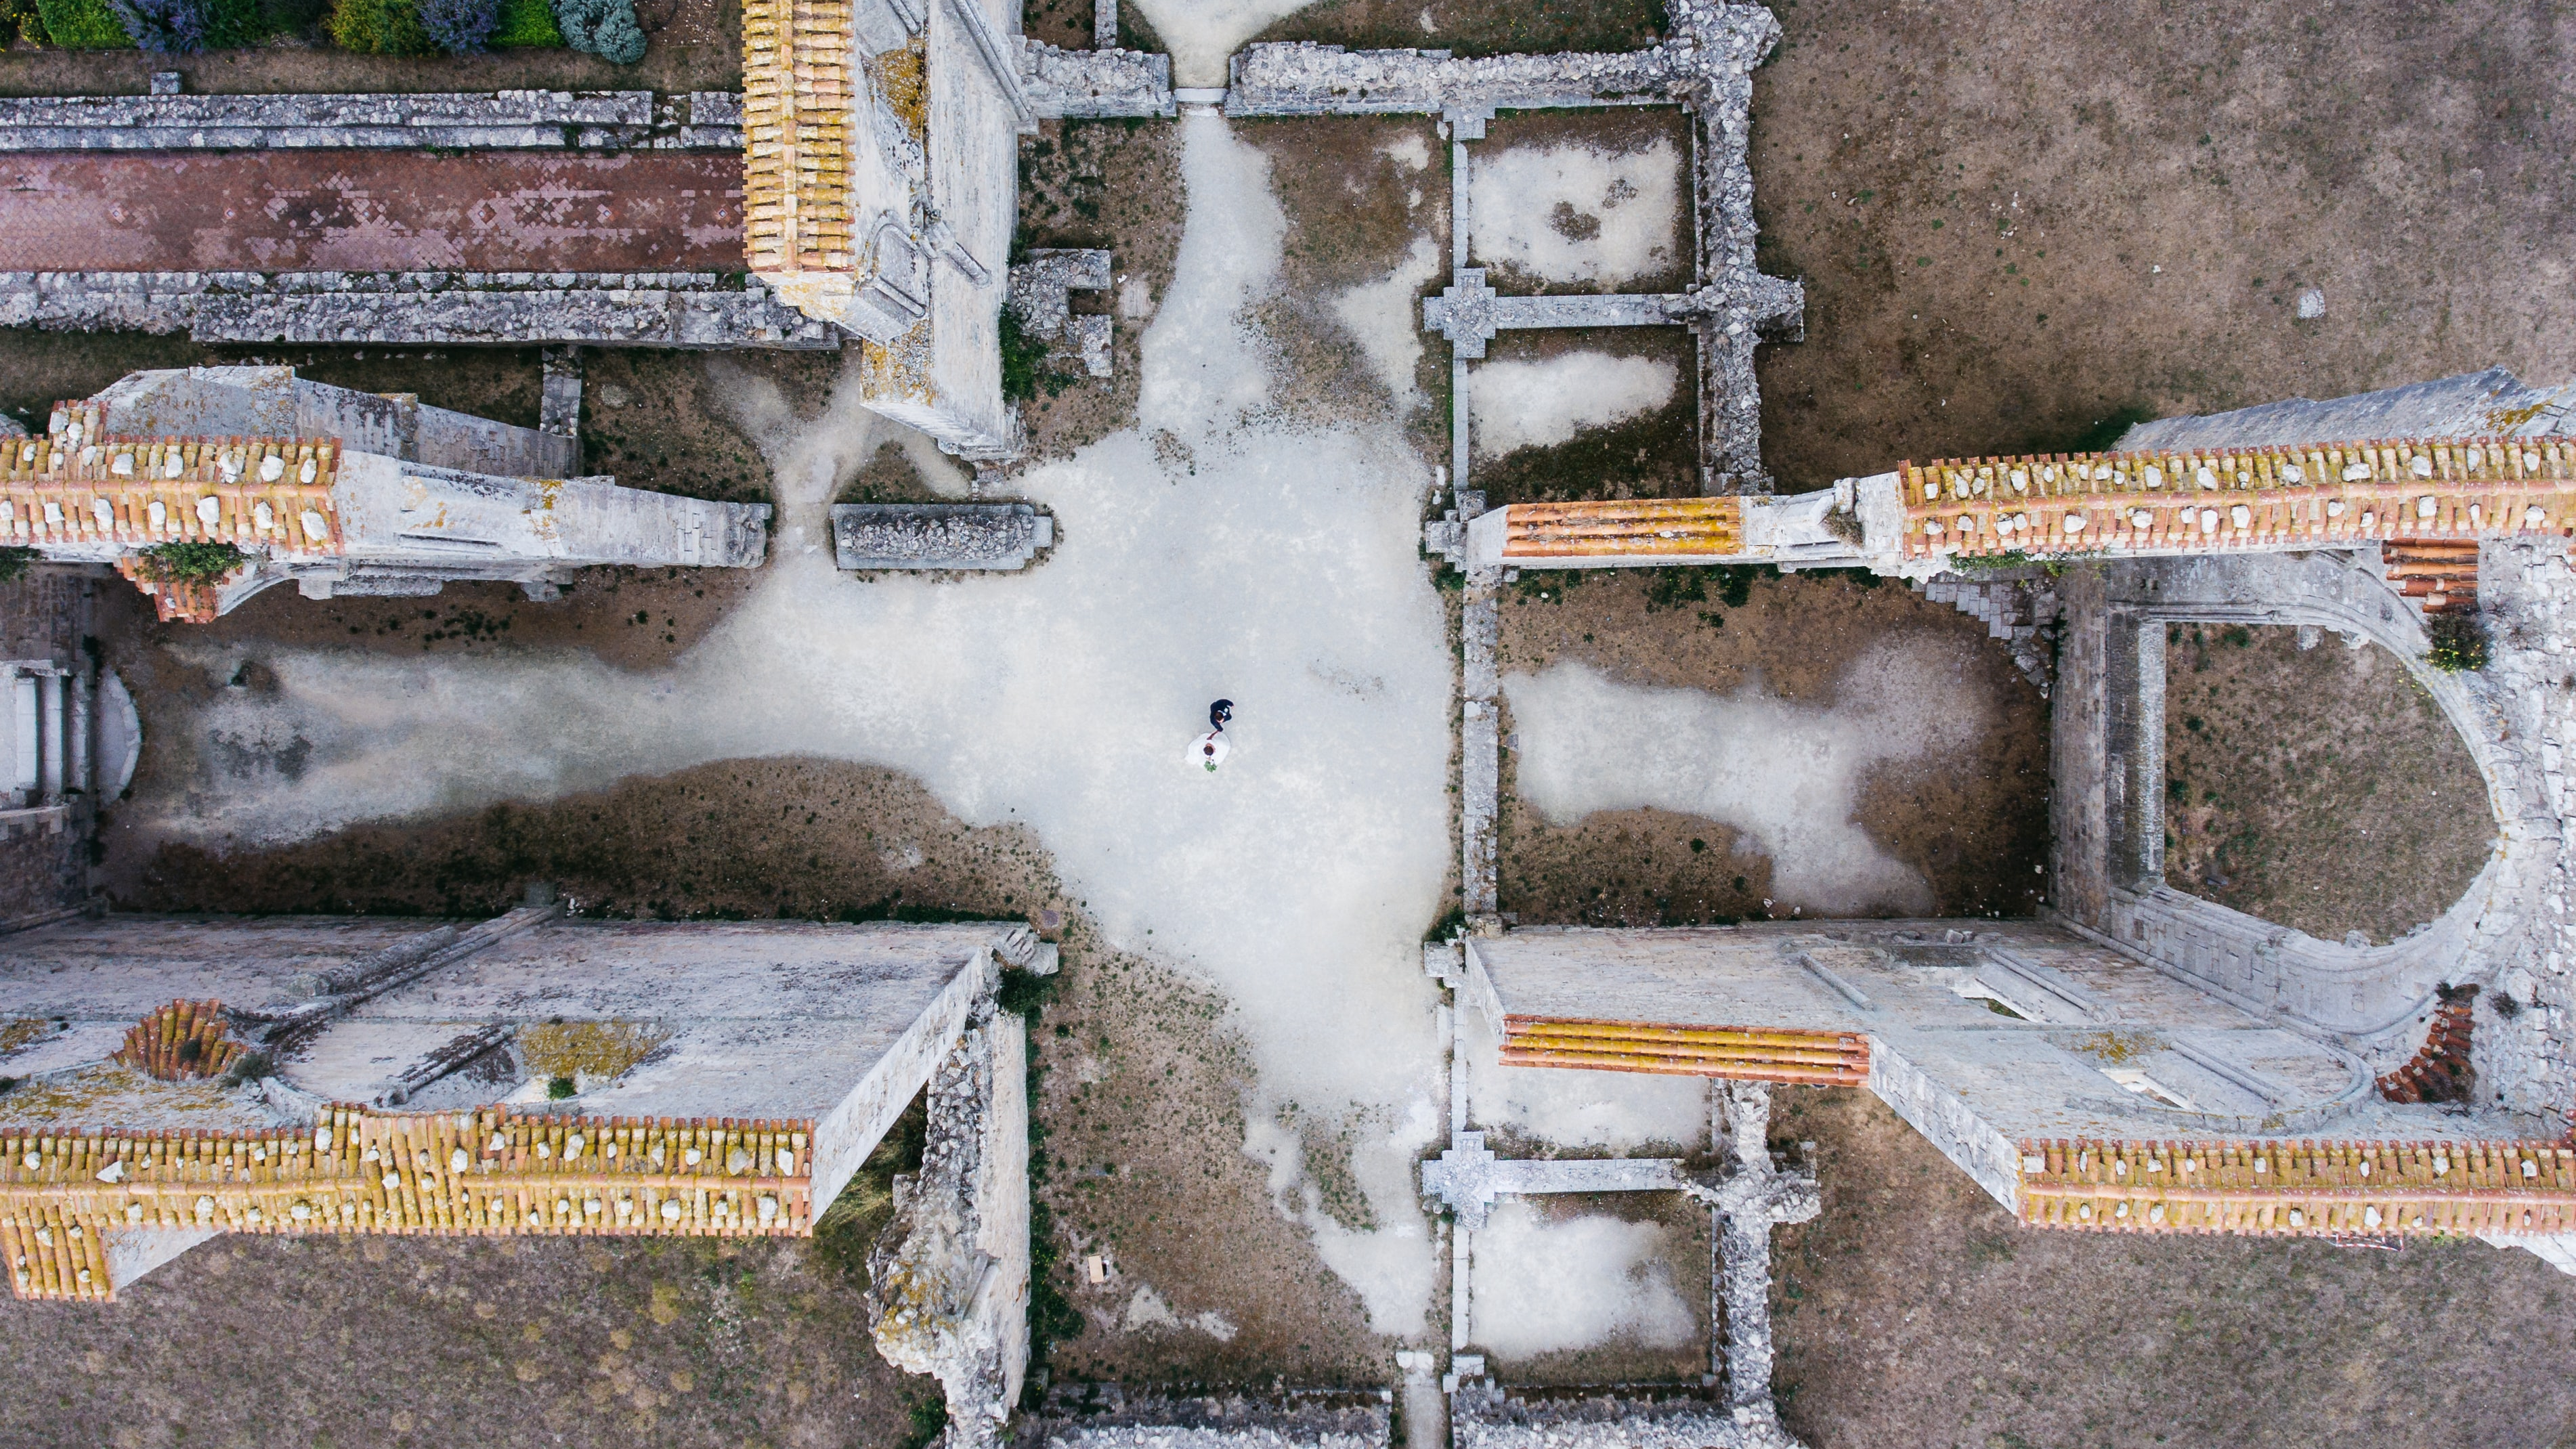 Rivedoux-Plage wedding from drone view with melting snow on ground